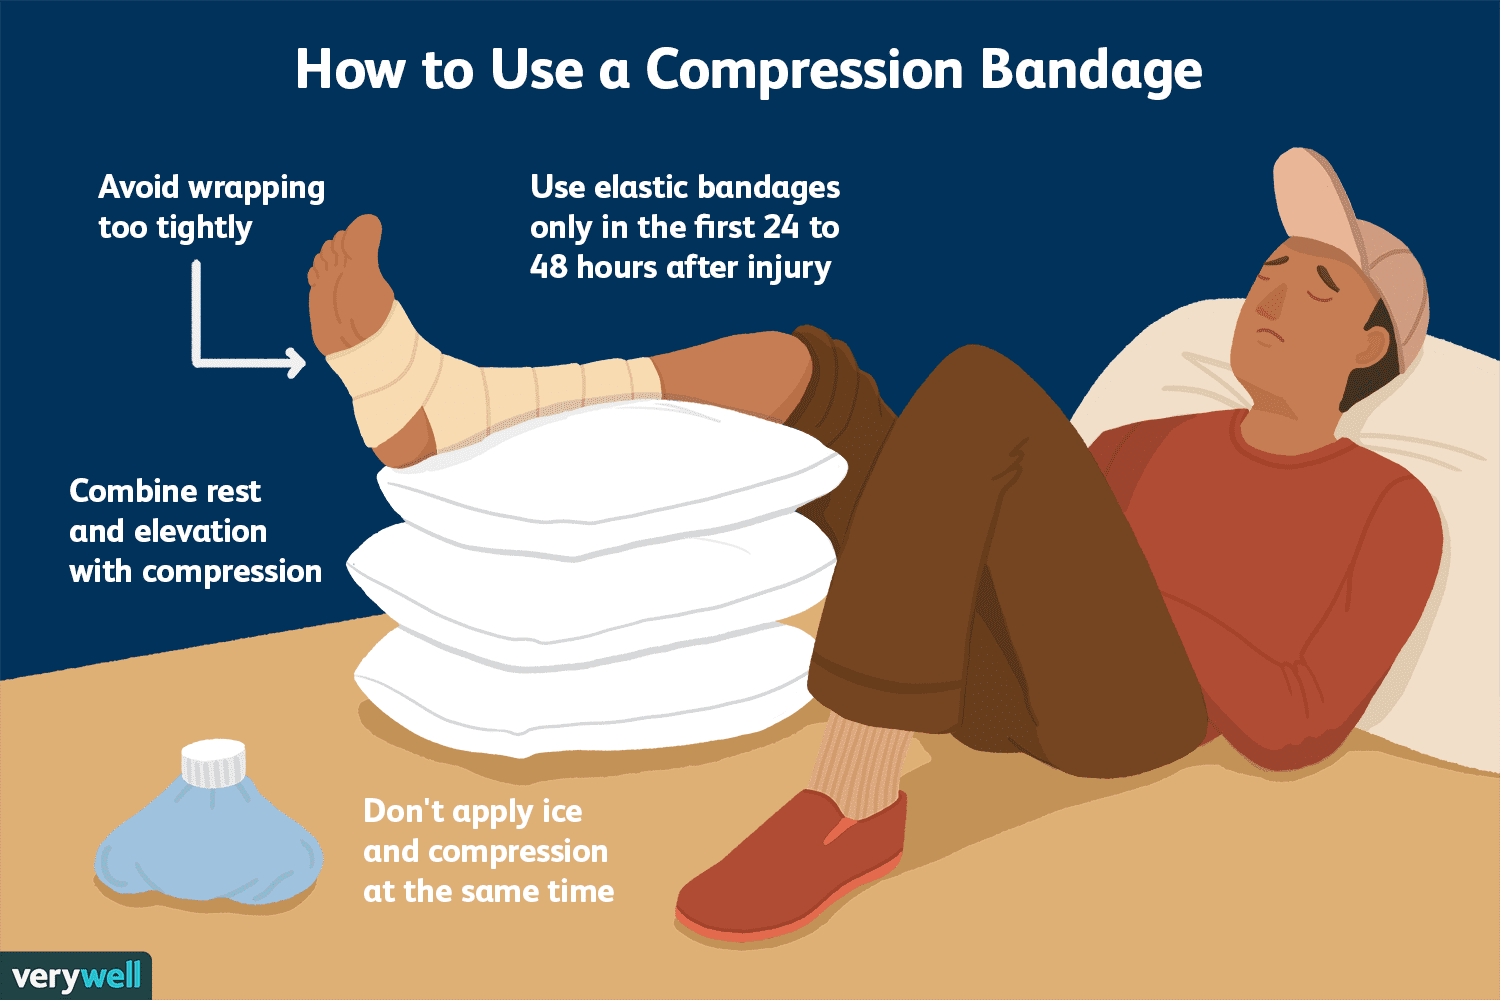 How to use a compression bandage